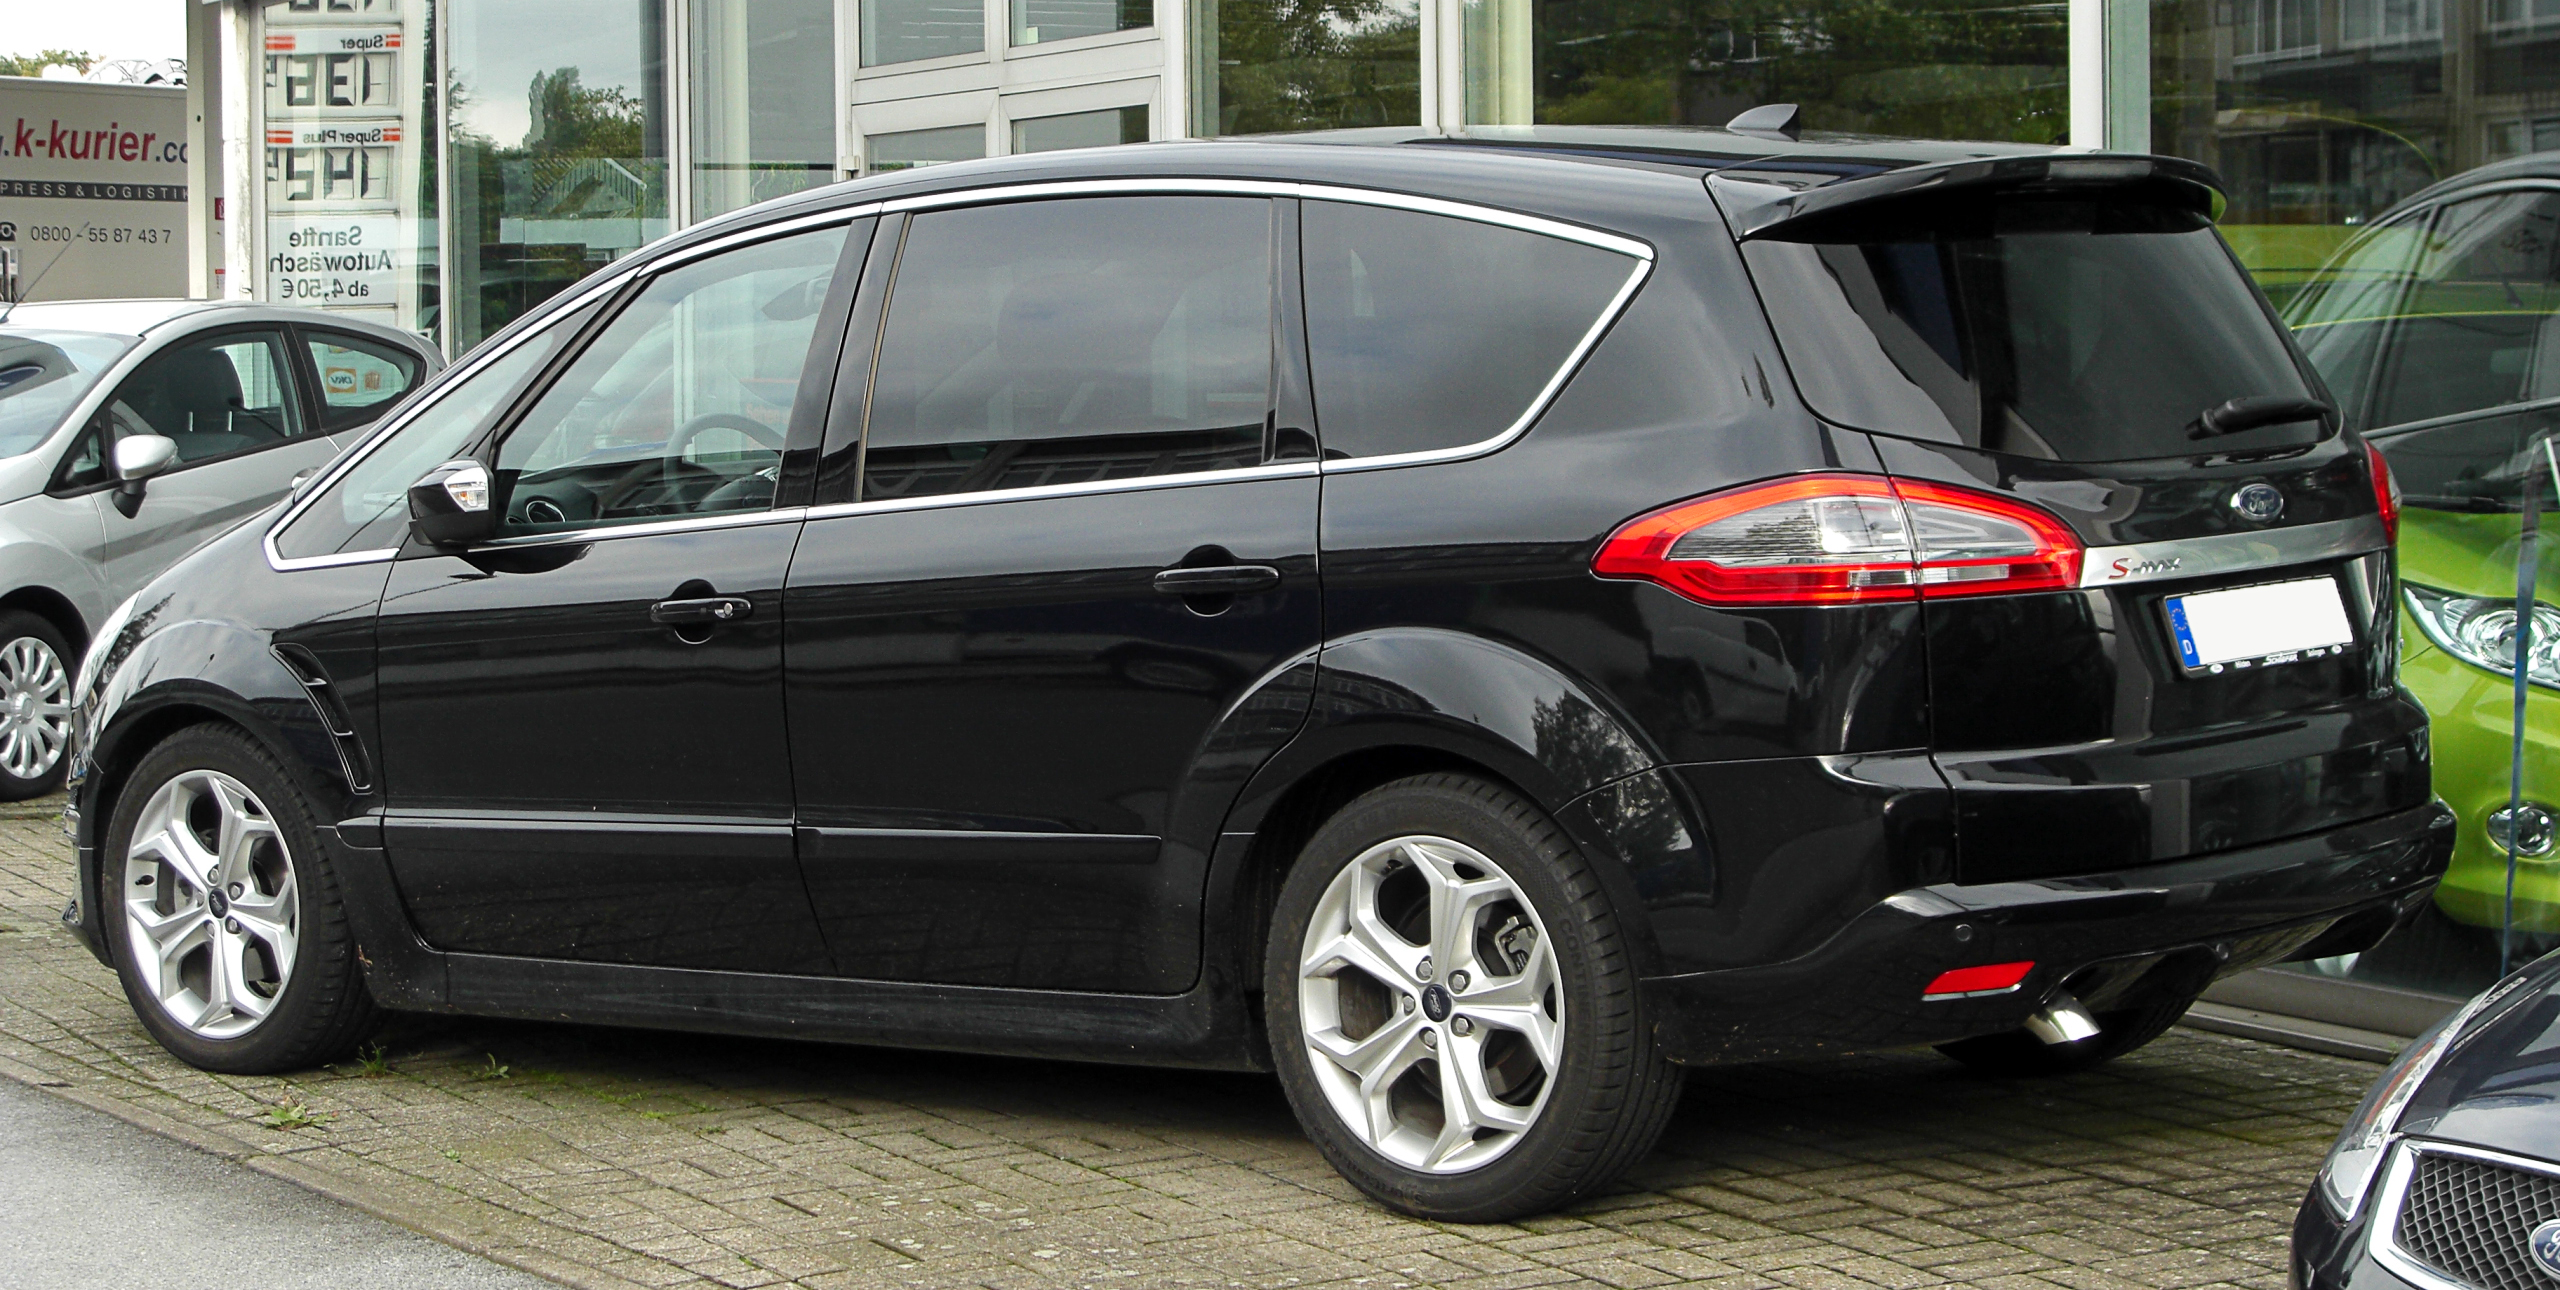 Cars ford s-max #6